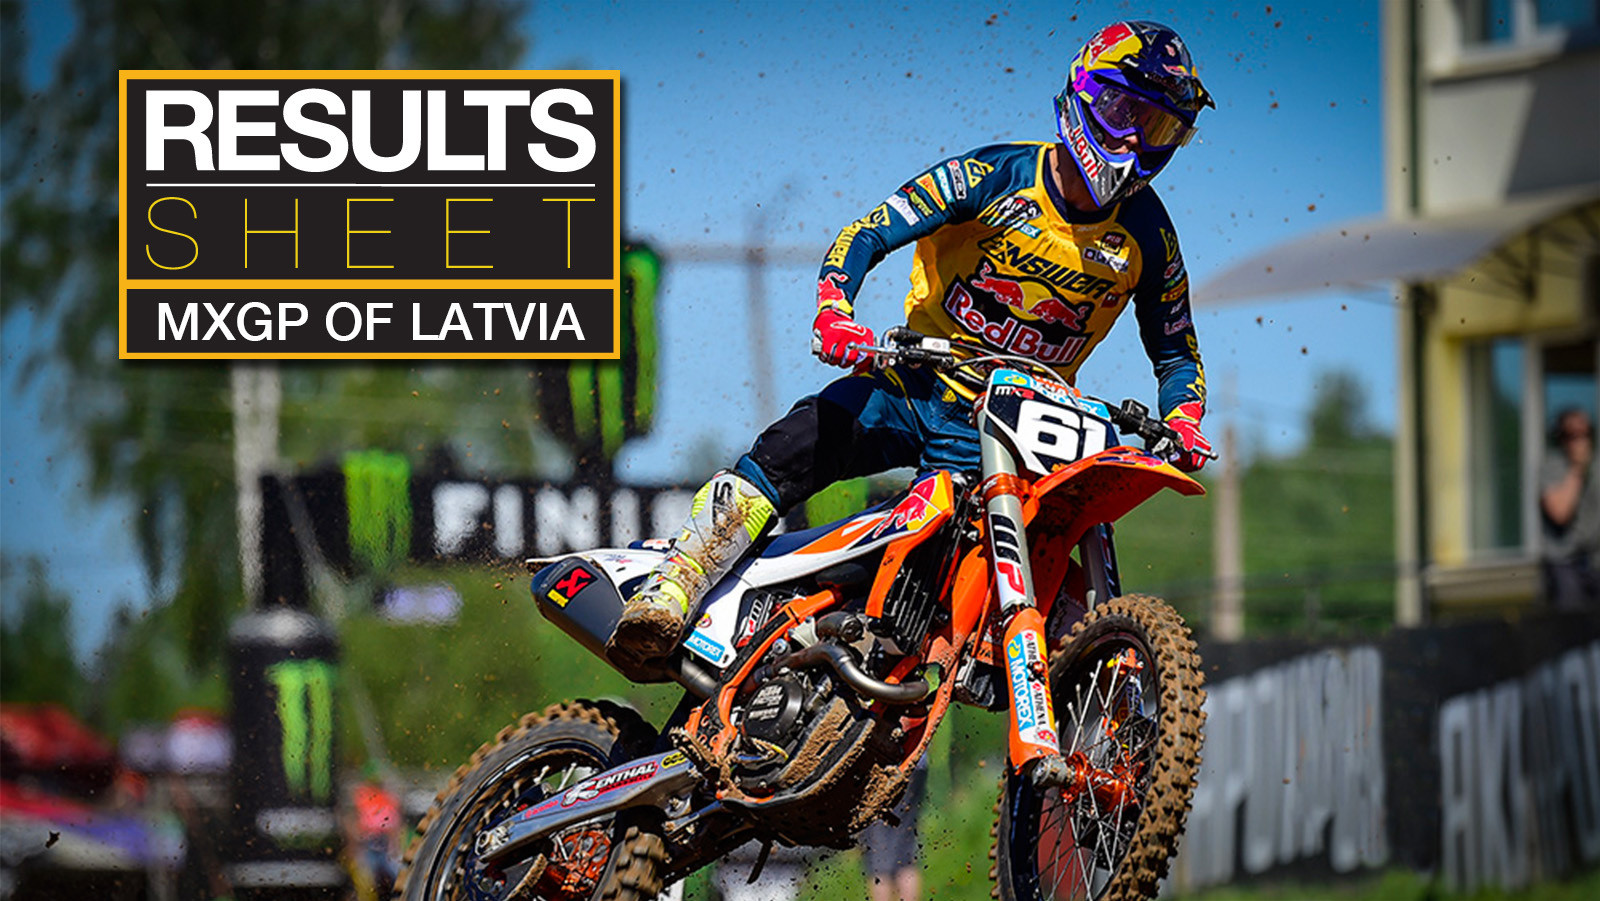 Results Sheet: 2018 MXGP of Latvia